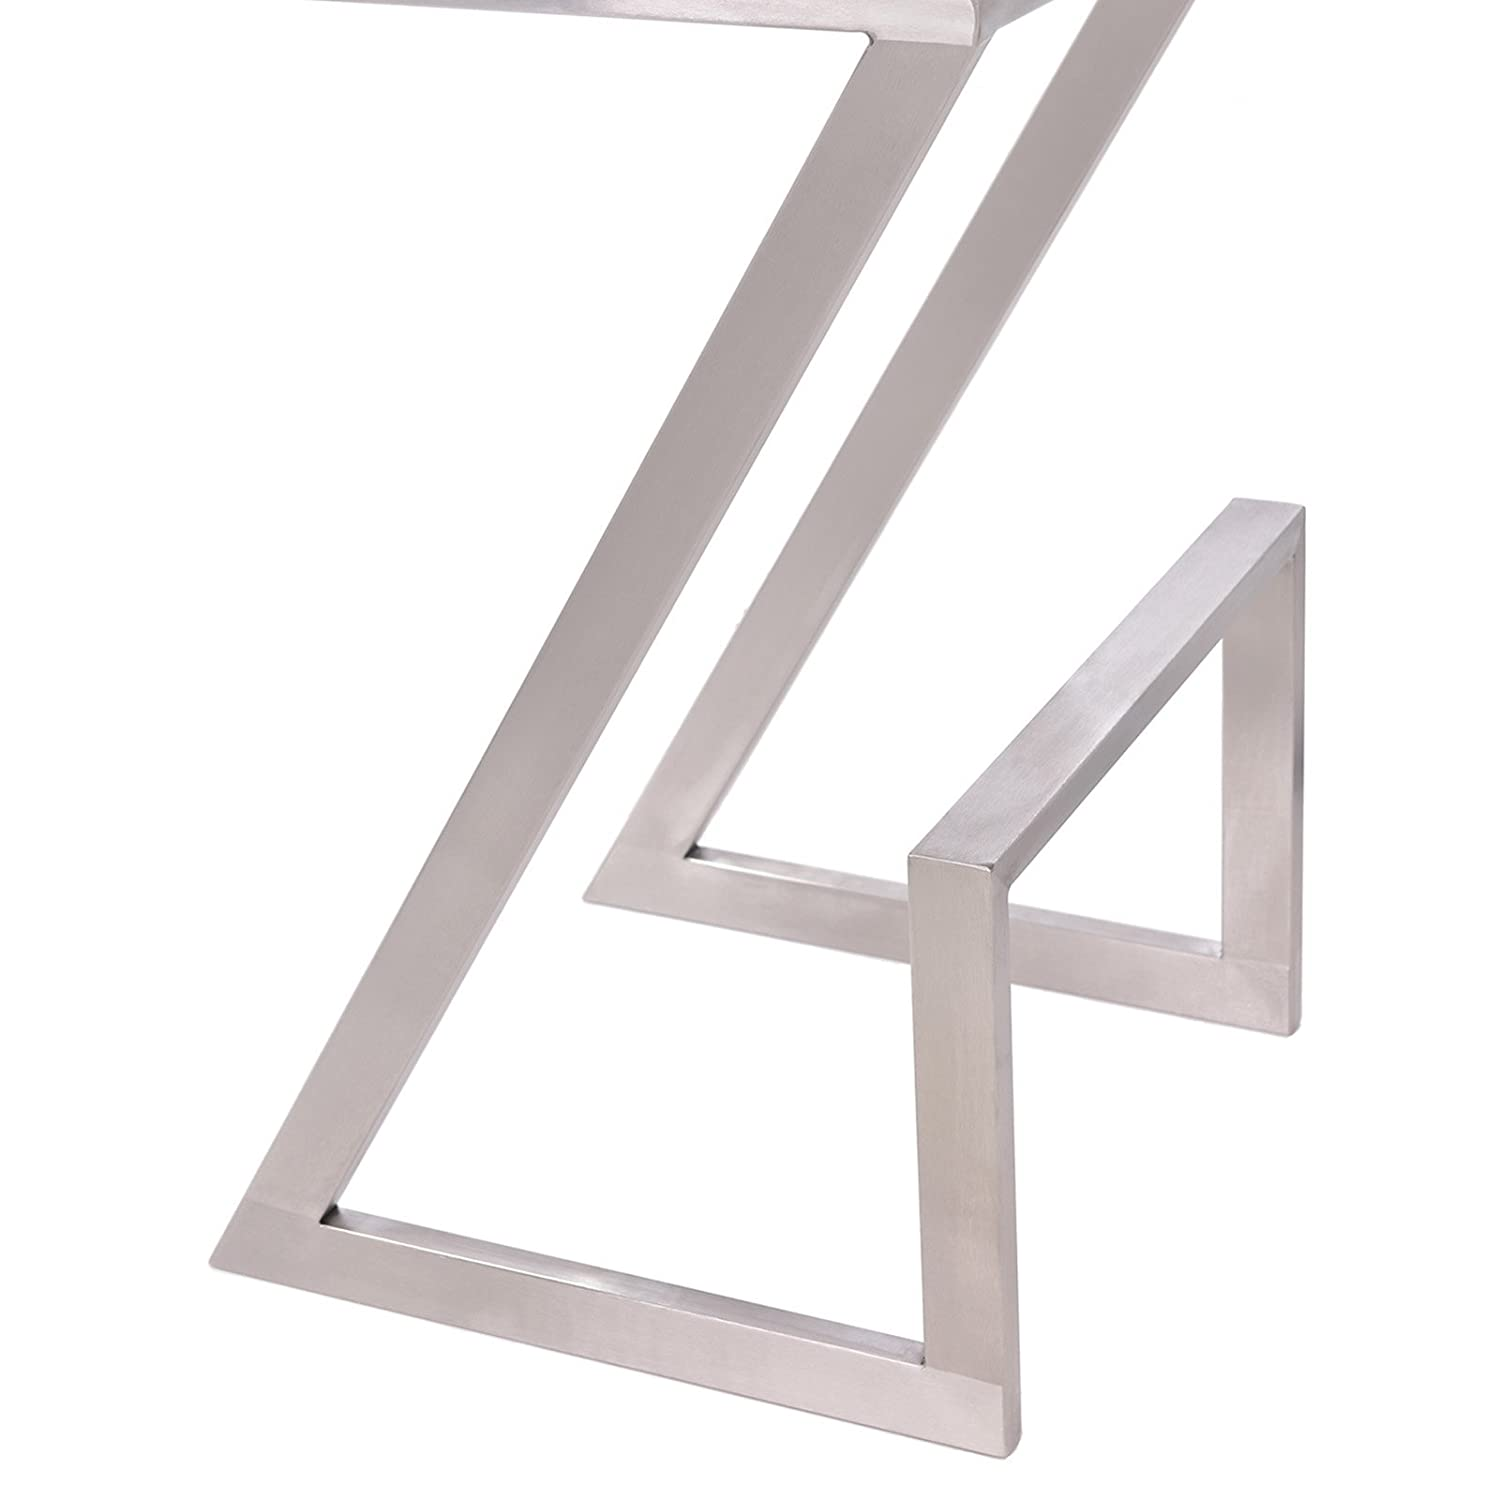 Armen Living LCAT30BAWH Atlantis 30 Bar Height Barstool in White Faux Leather and Brushed Stainless Steel Finish